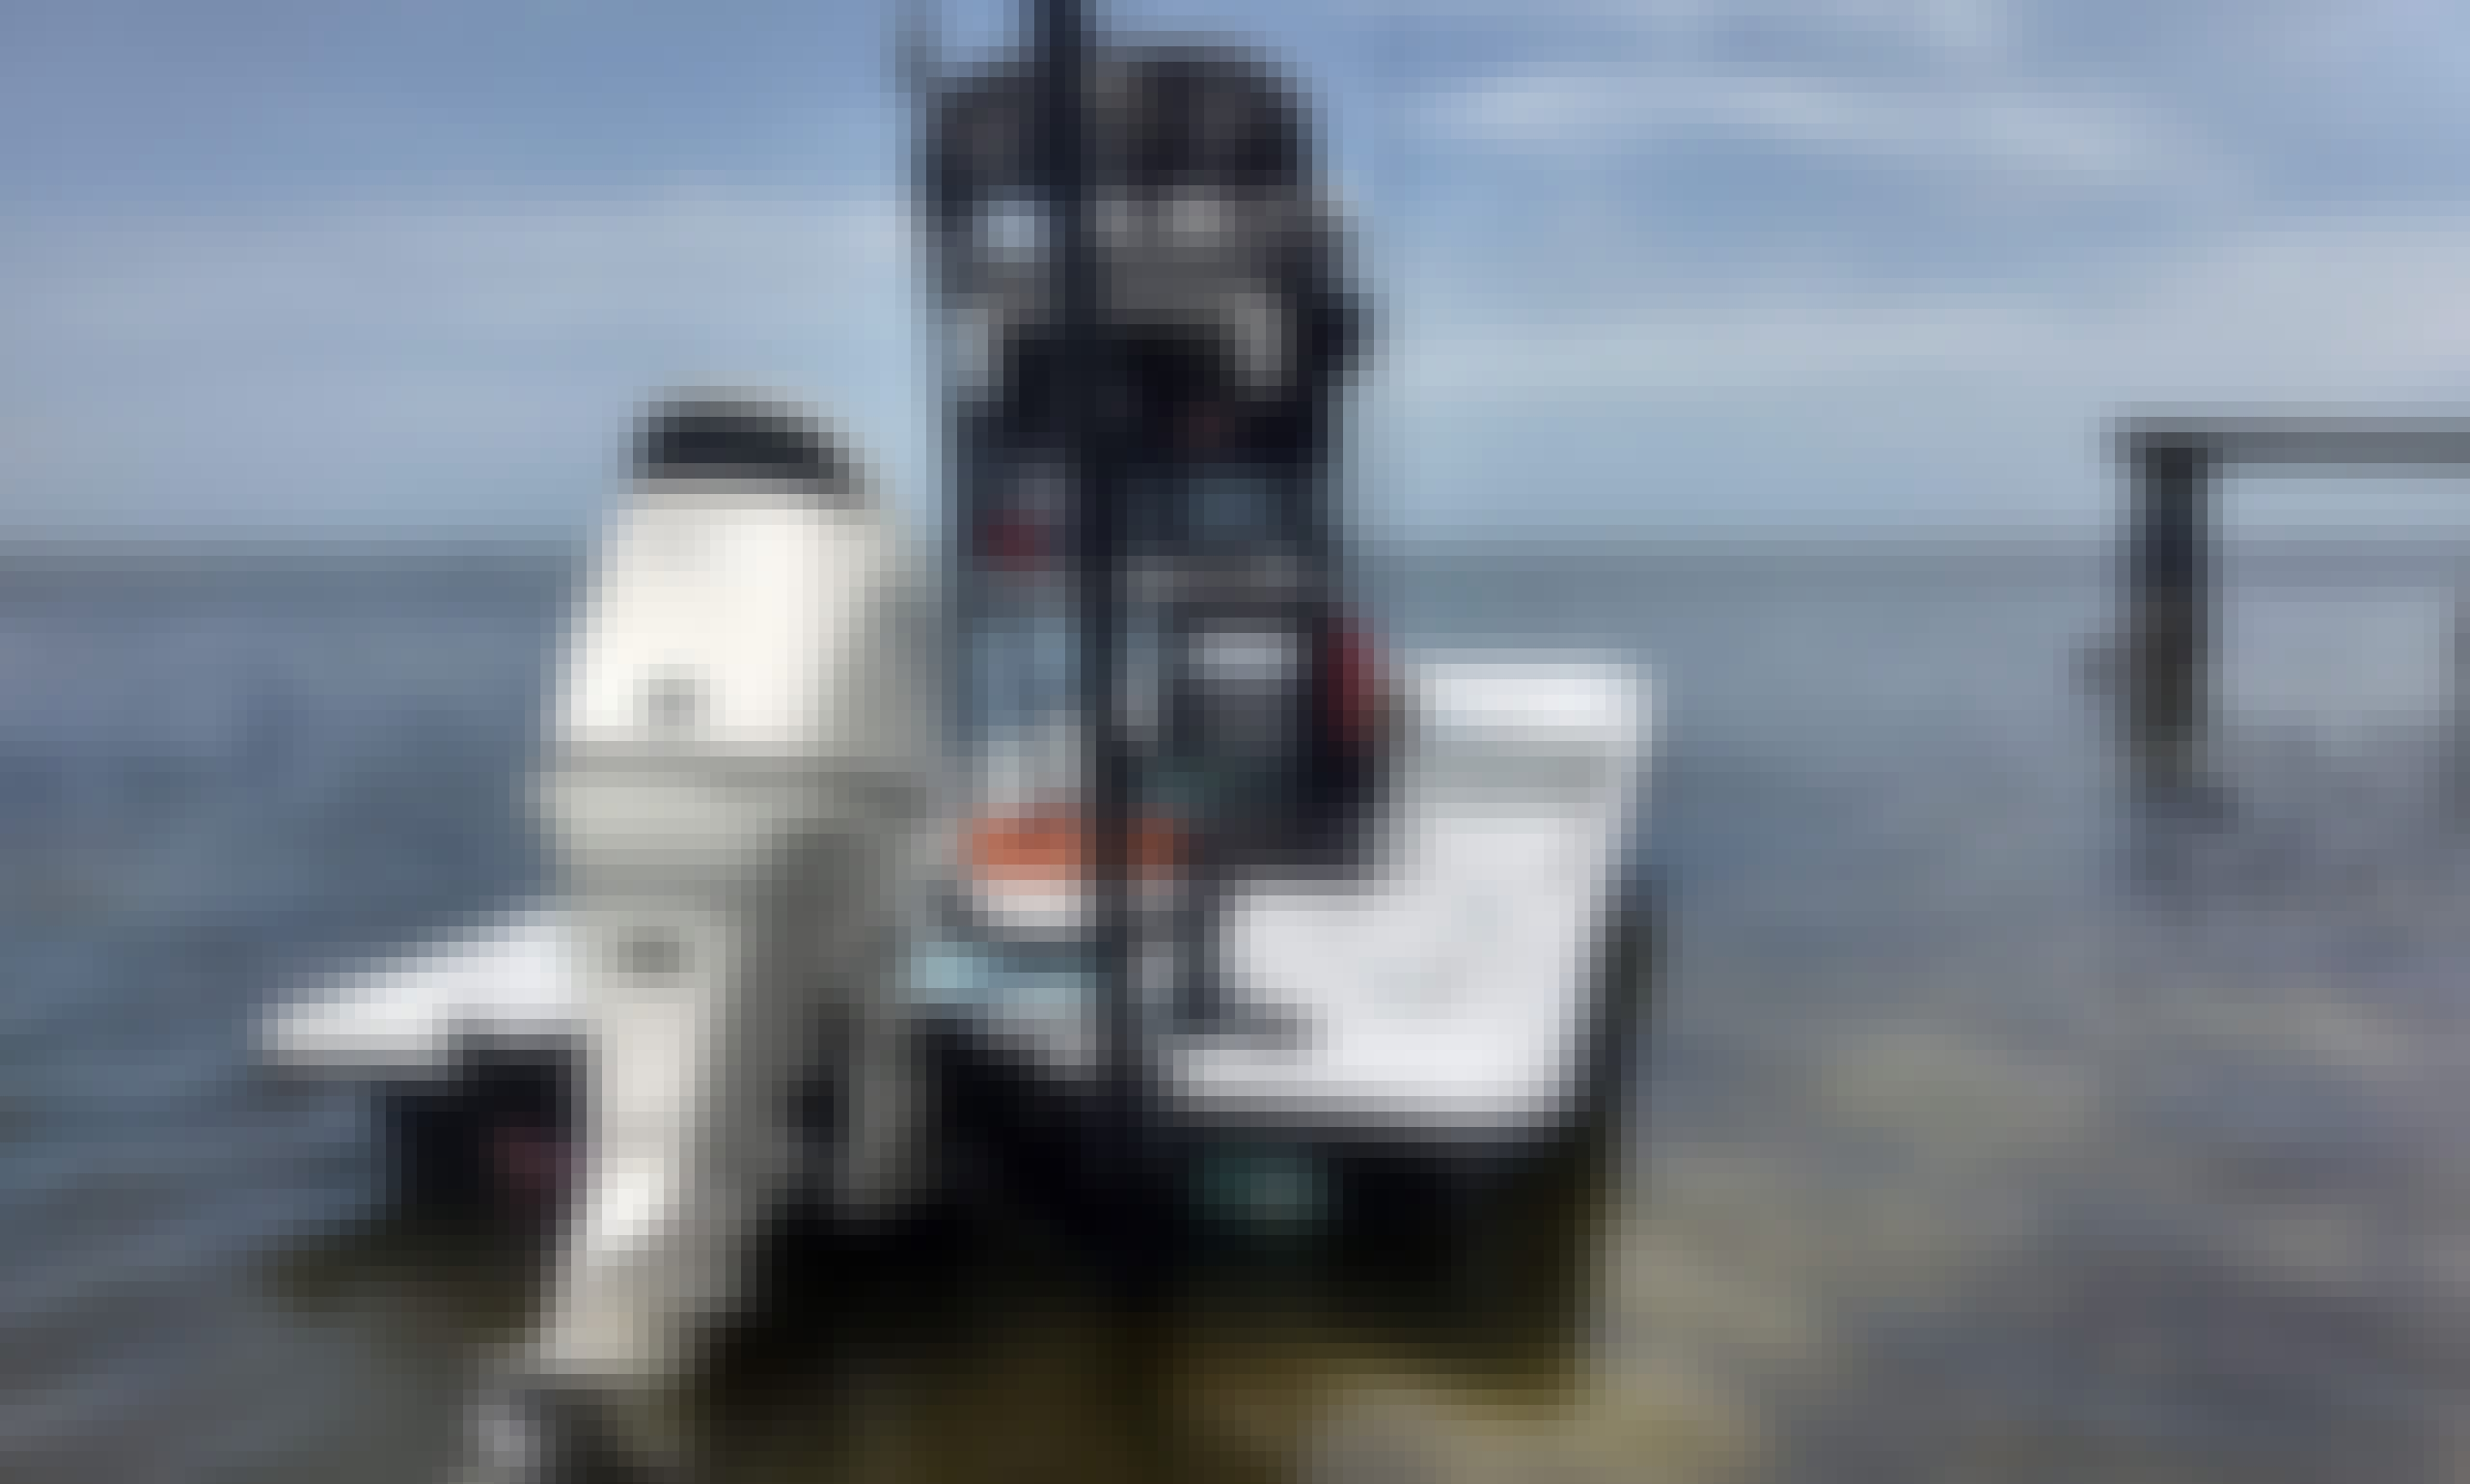 Fishing Charter Service from Lutz, Florida!